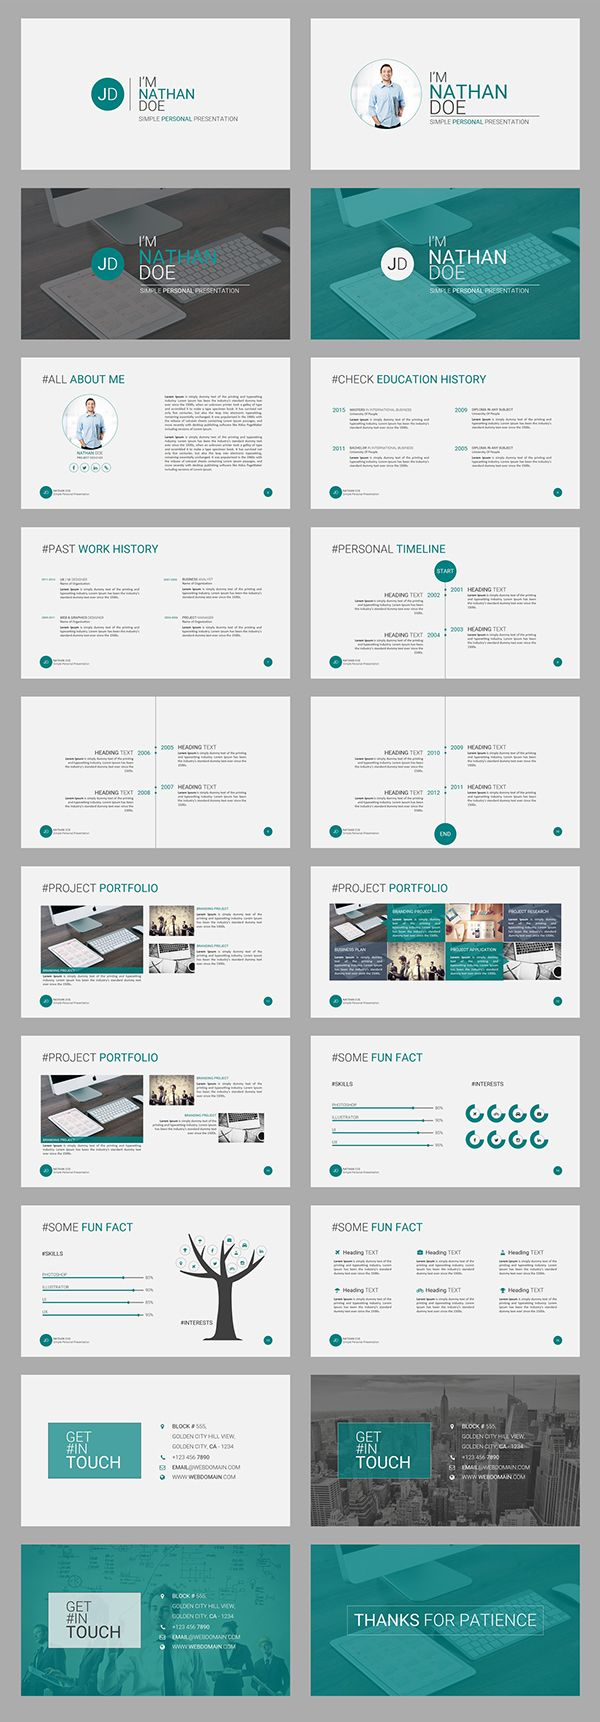 Jd personal cvresume powerpoint presentation template is a jd personal cvresume powerpoint presentation template is a toneelgroepblik Gallery